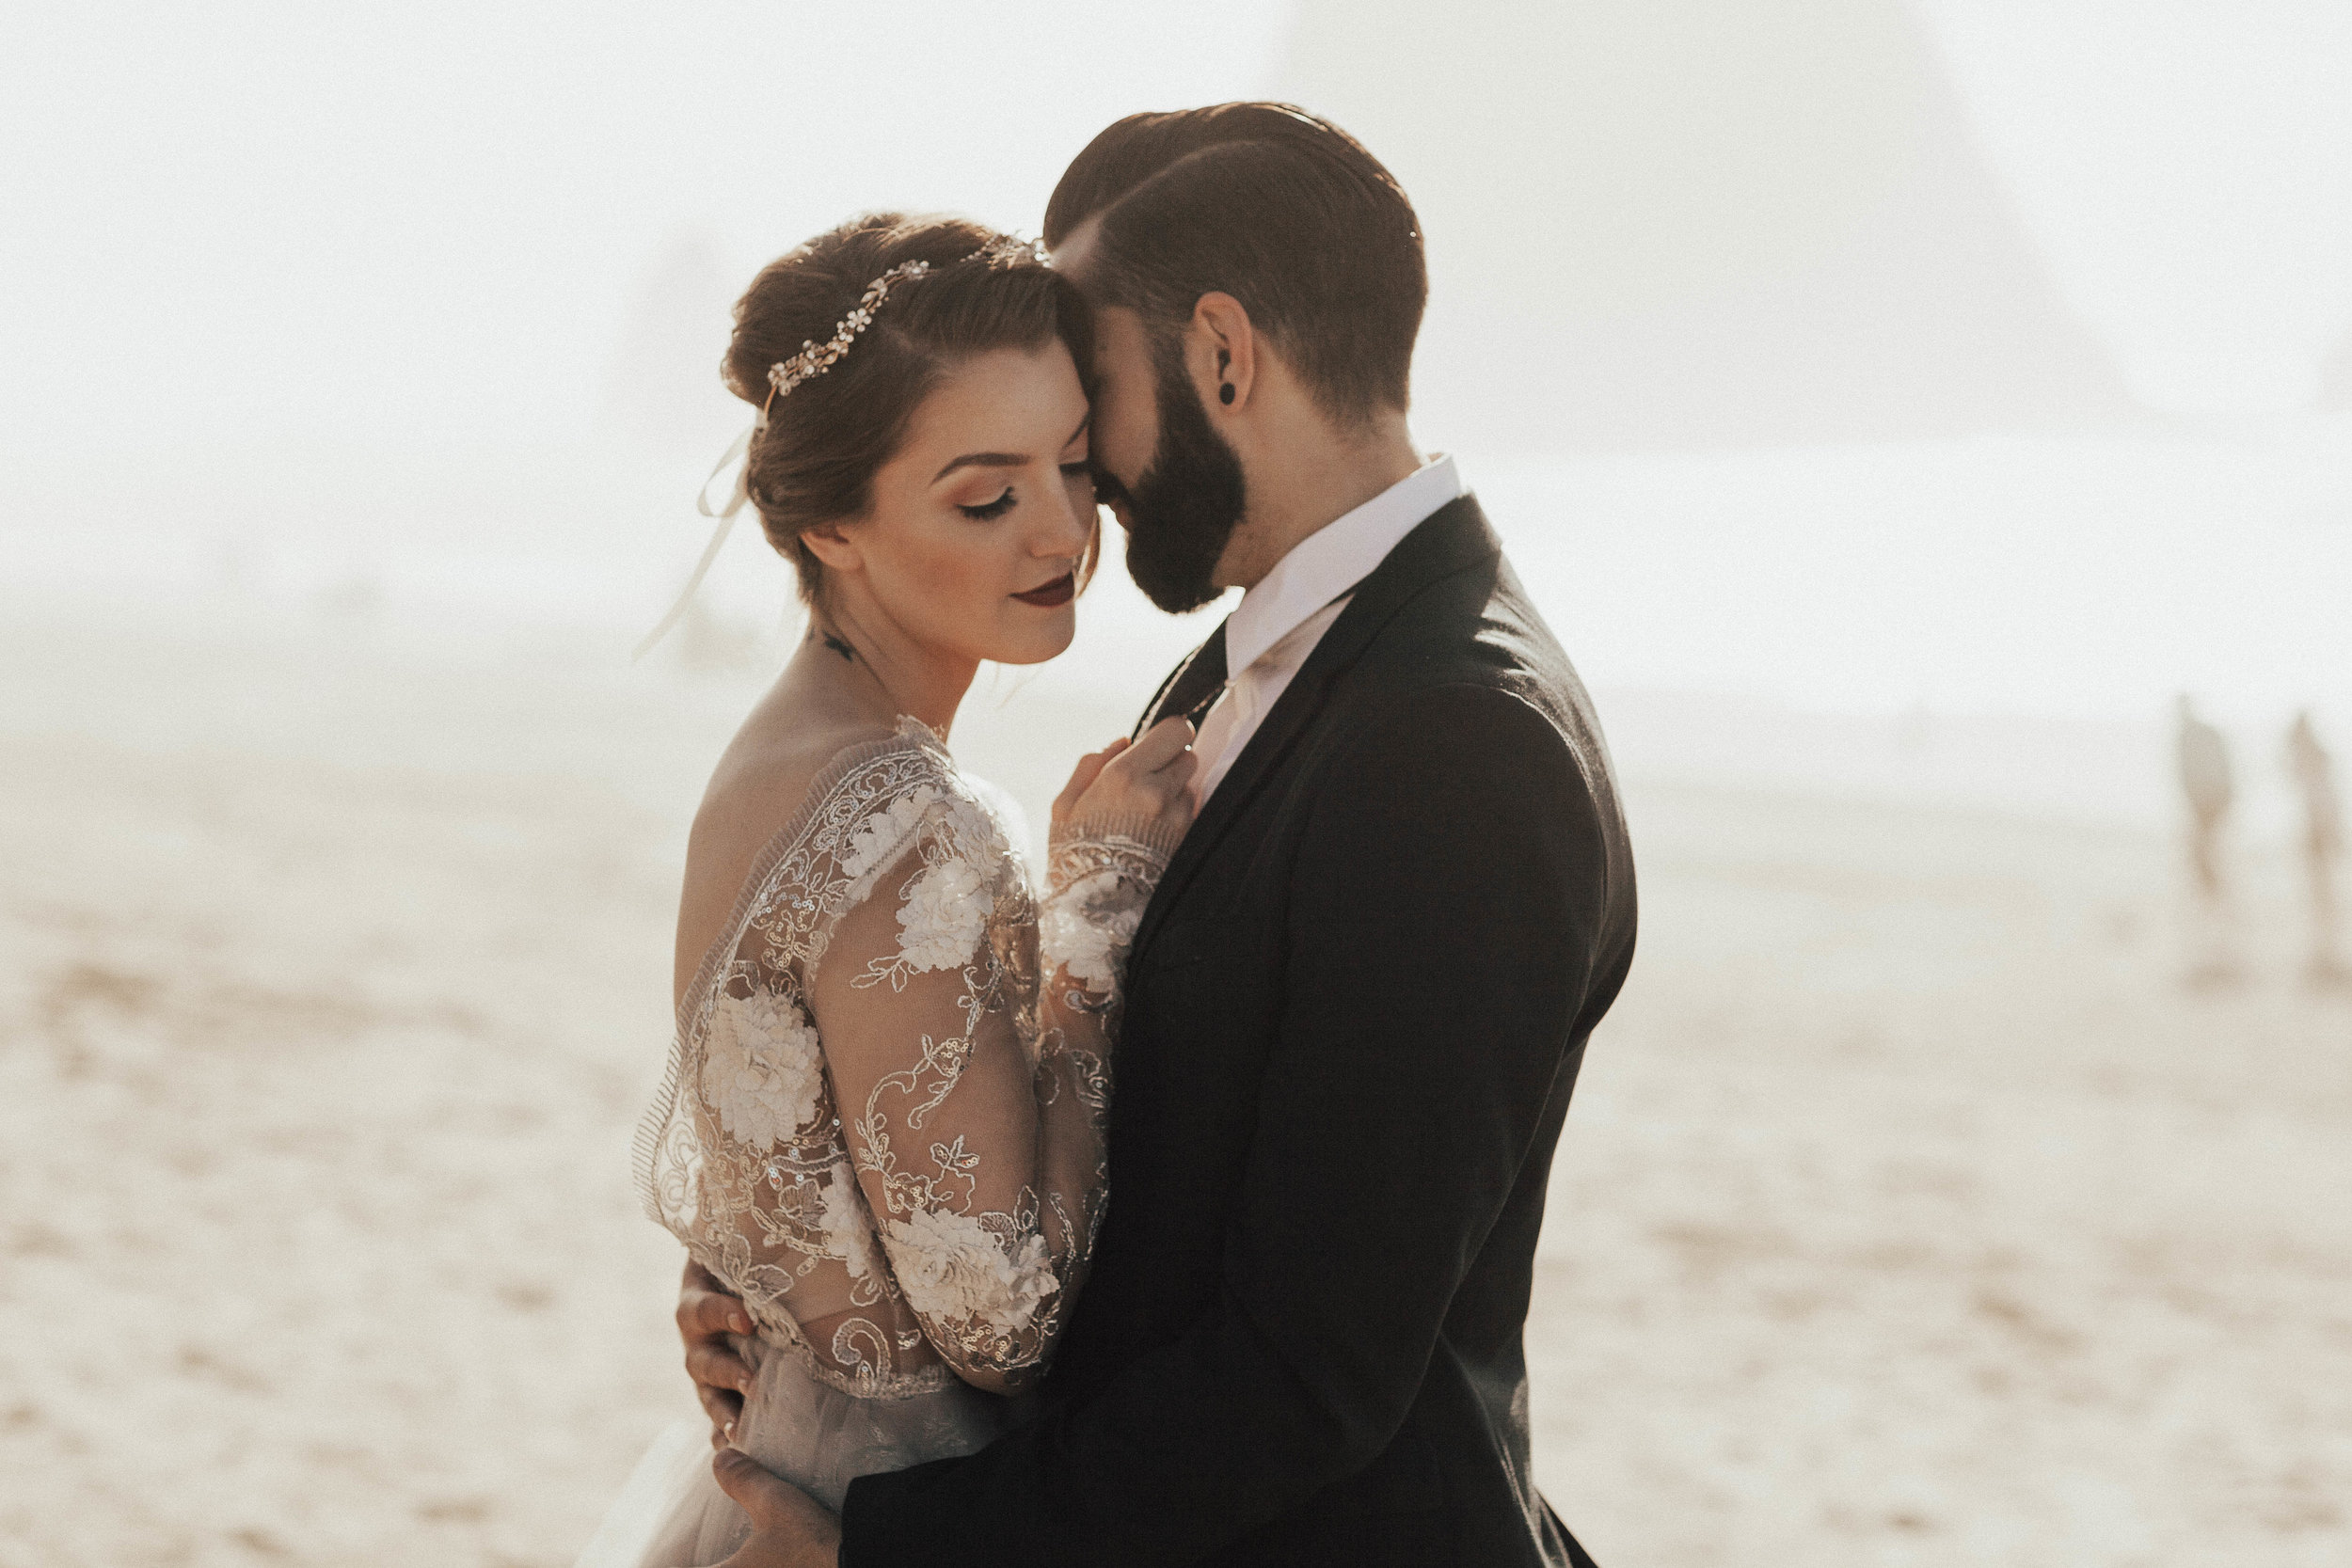 Cannon Beach Elopement - Michelle Larmand Photography - 039